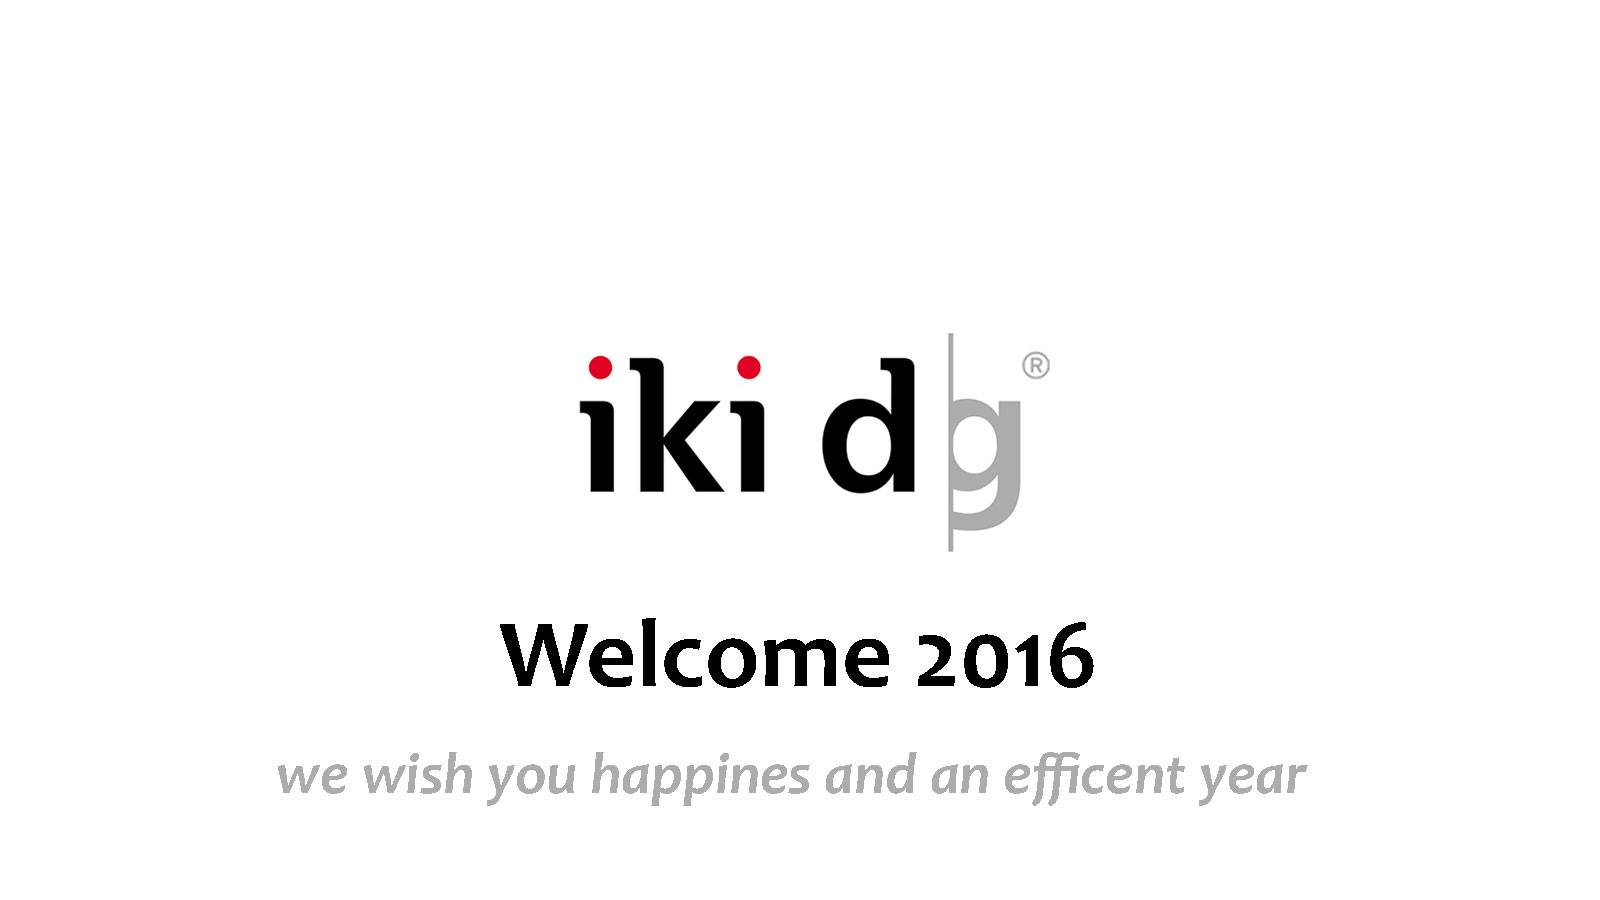 31.12.2015 NEW YEAR'S MESSAGE